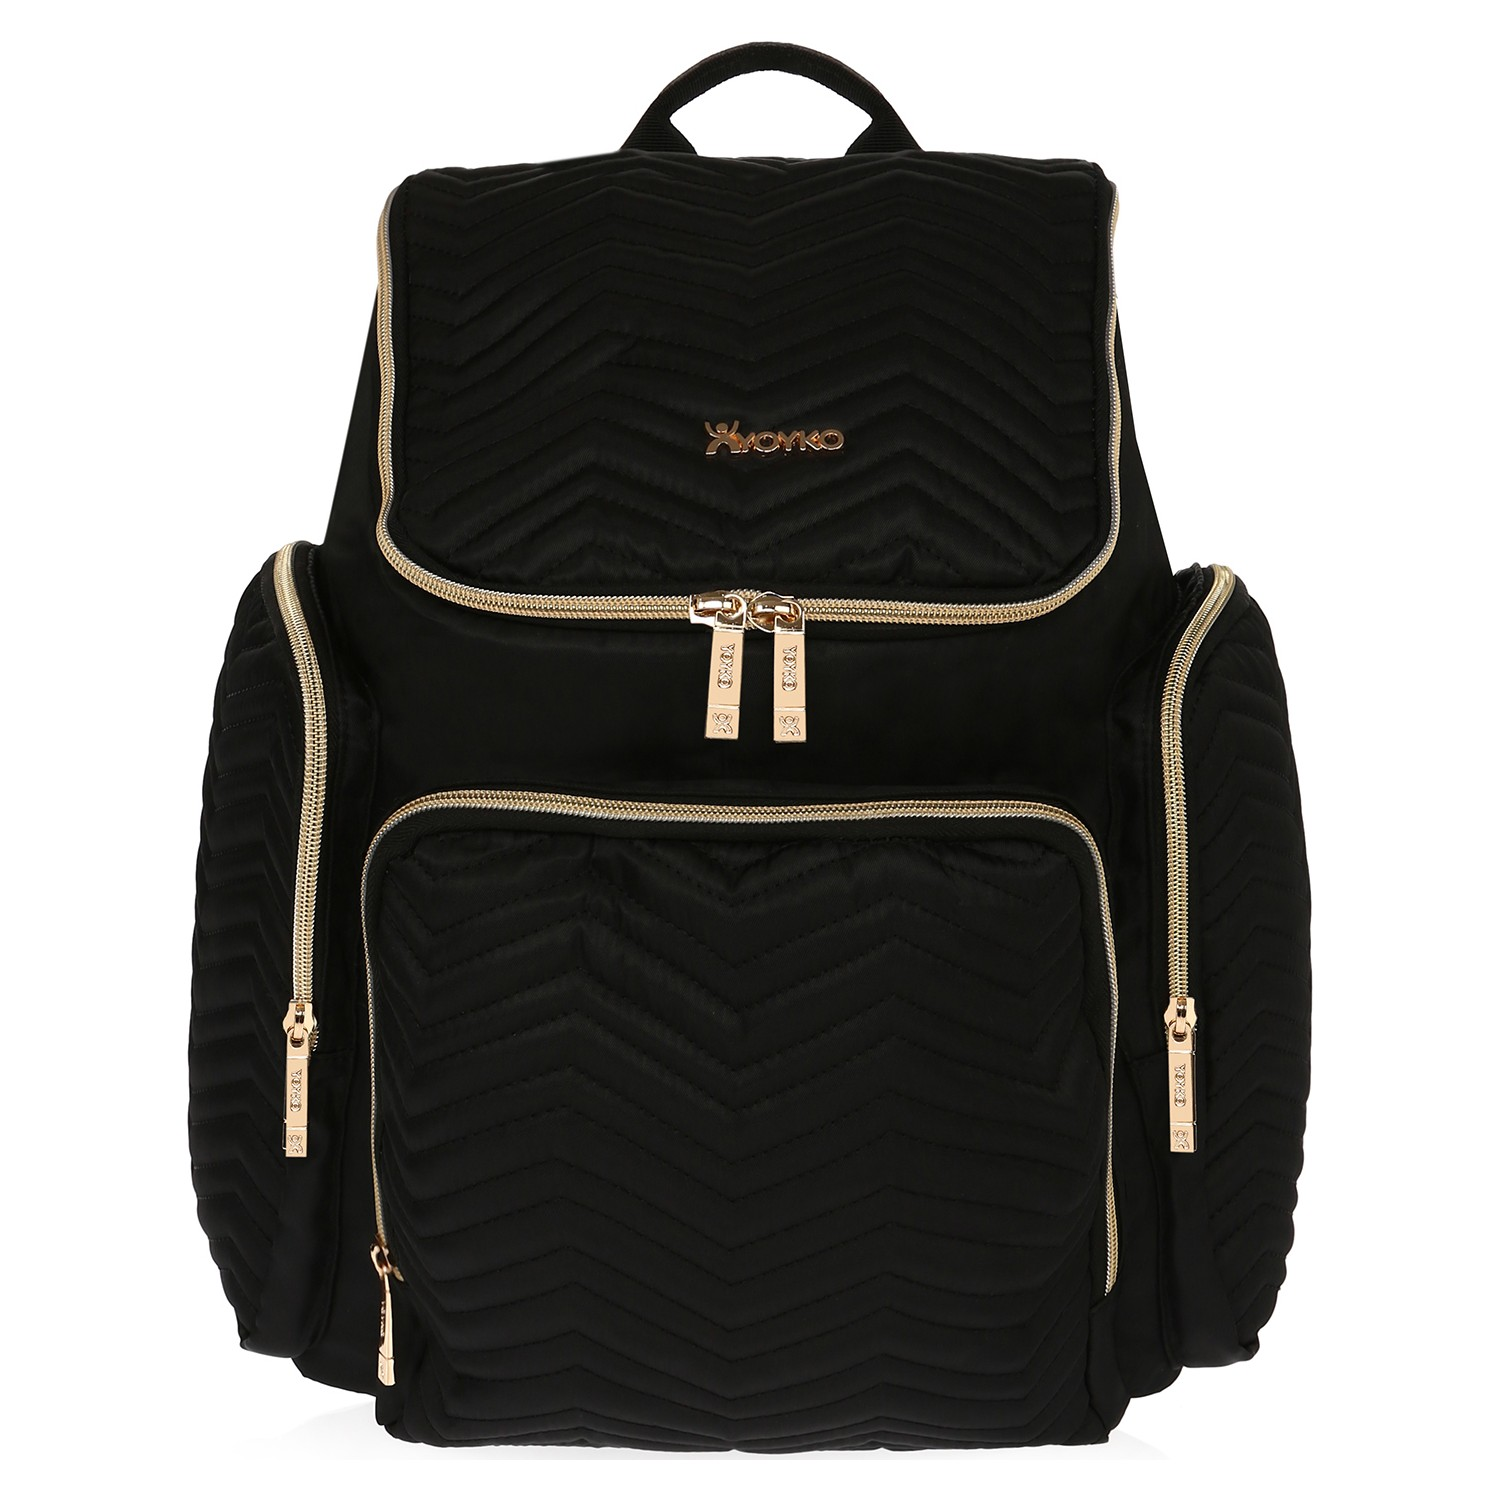 Yoyko New Mocca Mother Baby Care Backpack Black, Maternity, Large Capacity, Diaper Bag, Nappy, trave